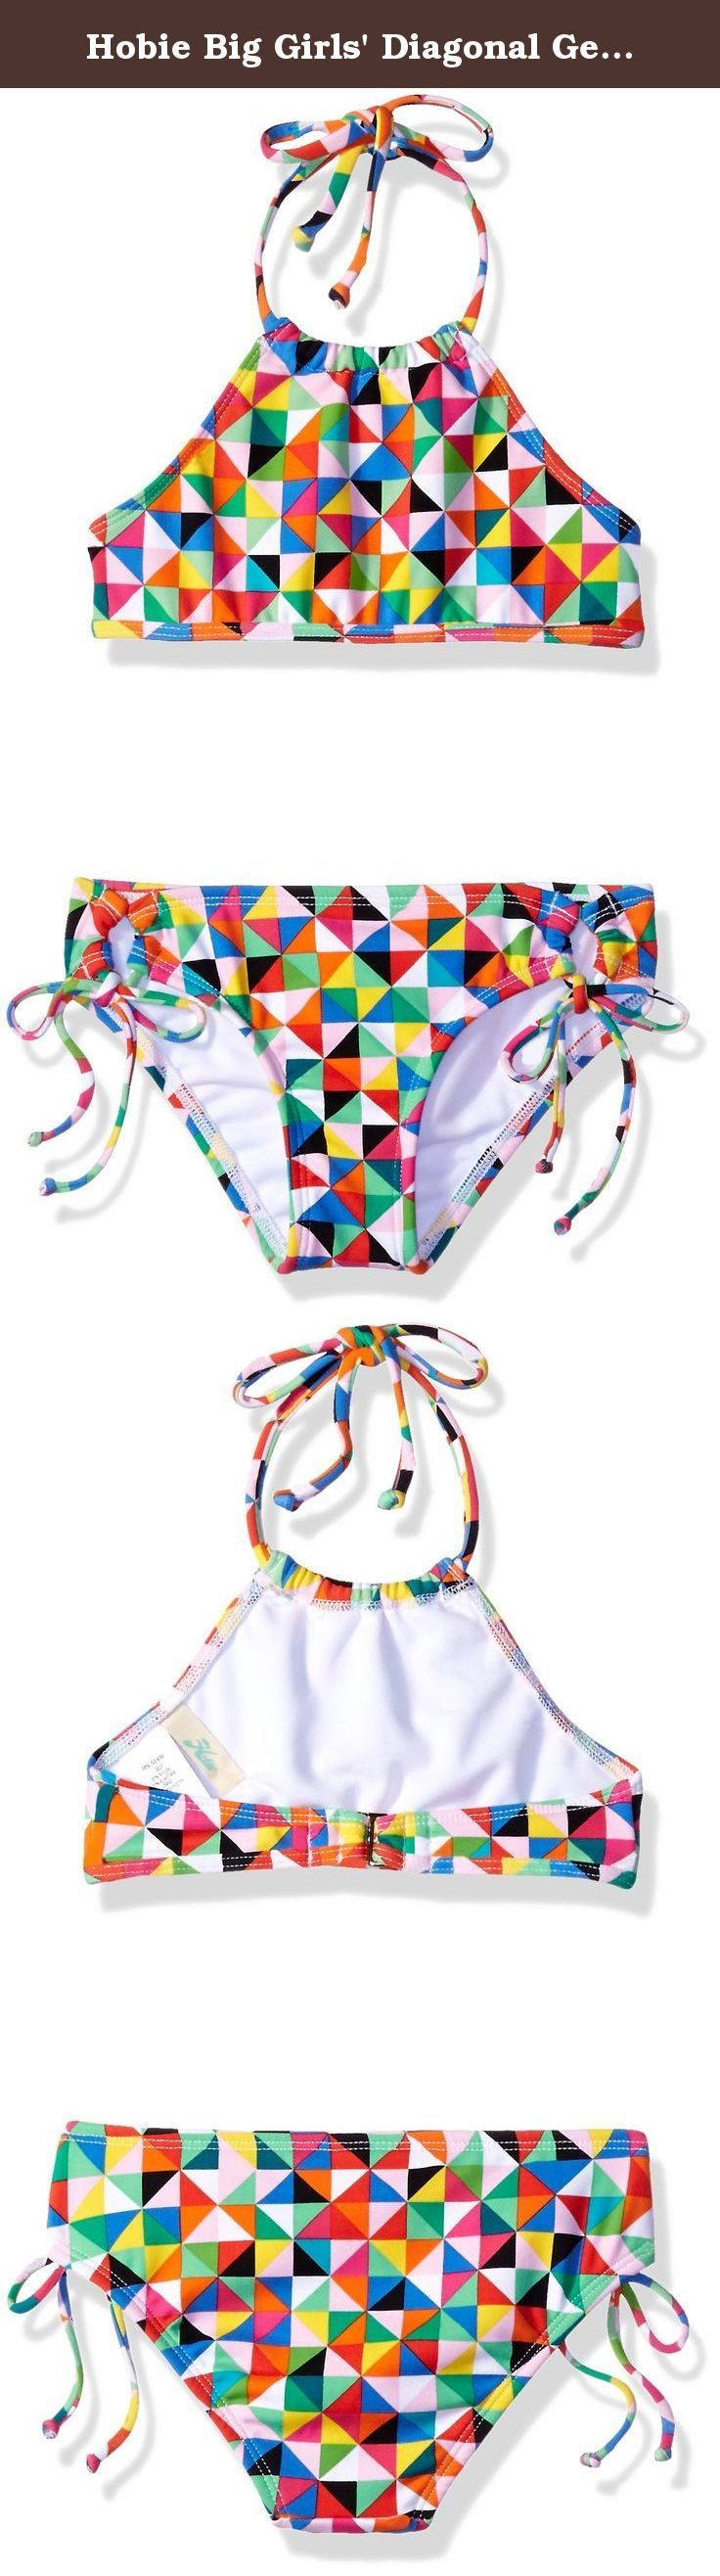 Hobie Big Girls' Diagonal Geo High Neck Set, Multi, 7. Colorful geometric print high neck top and hipster pant swim suit set.